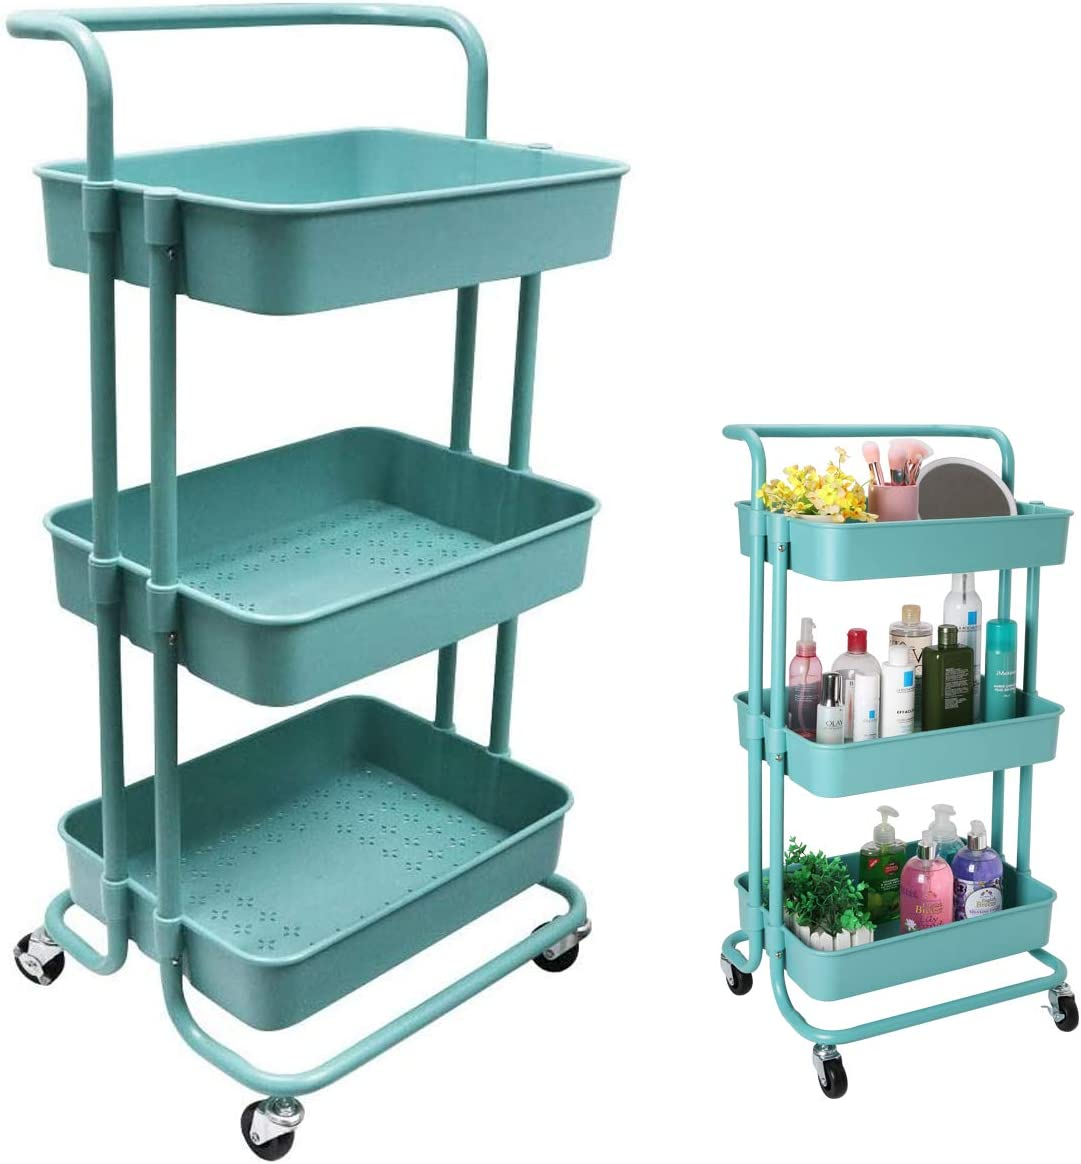 3-Tier Rolling Utility Cart Multifunction Storage Trolley Kitchen Storage Organizer Carts Shelves with Wheels, StainSteel Handle and ABS Storage Basket, for Office Bathroom Kitchen Organization (Teal)